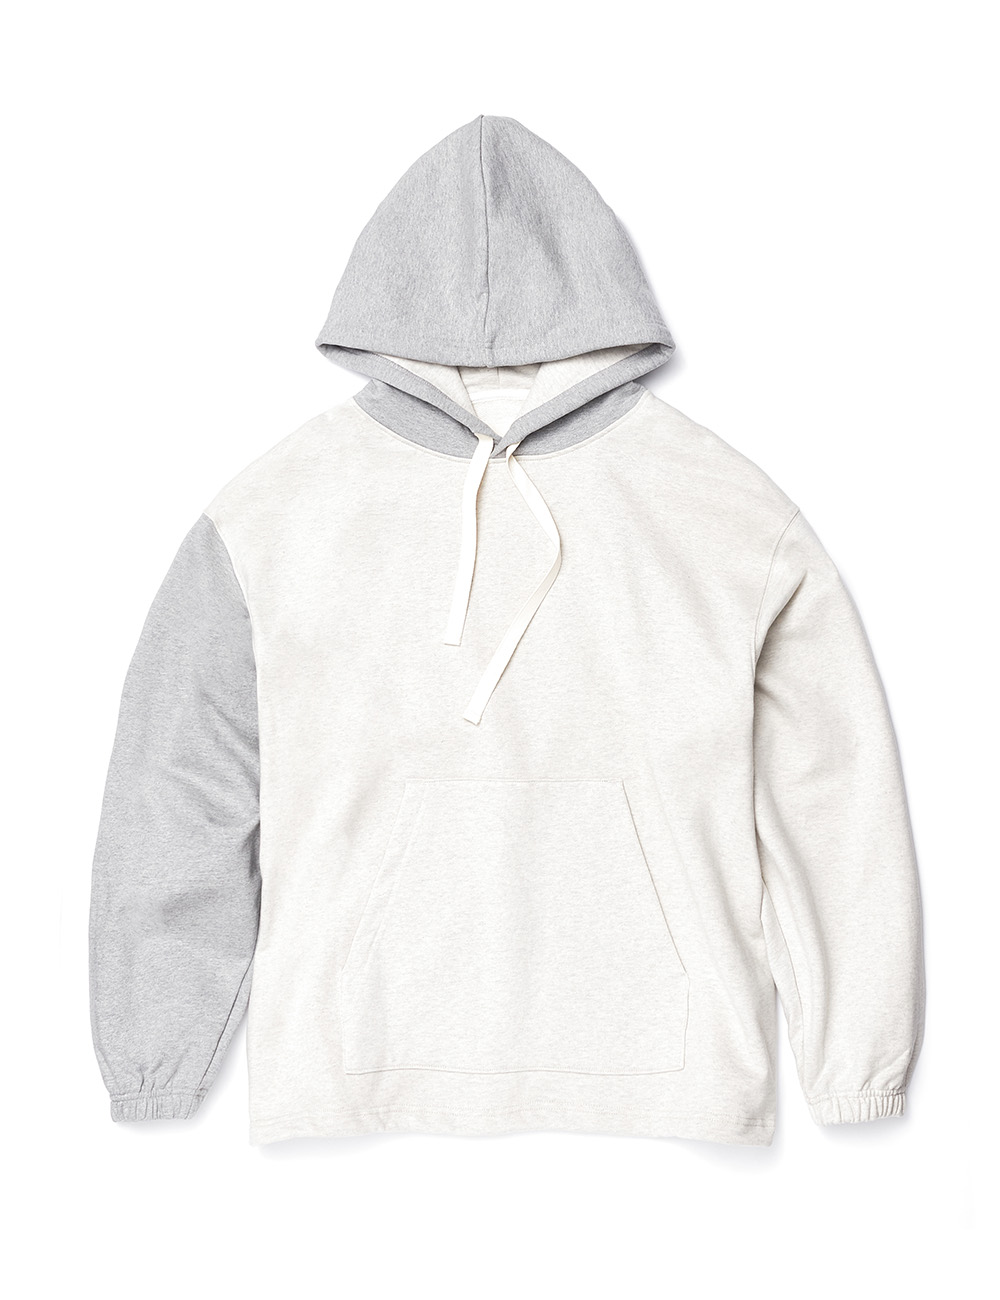 [ESFAI X OURSELVES] CONNECTION HOODIE (Oatmeal / Grey)